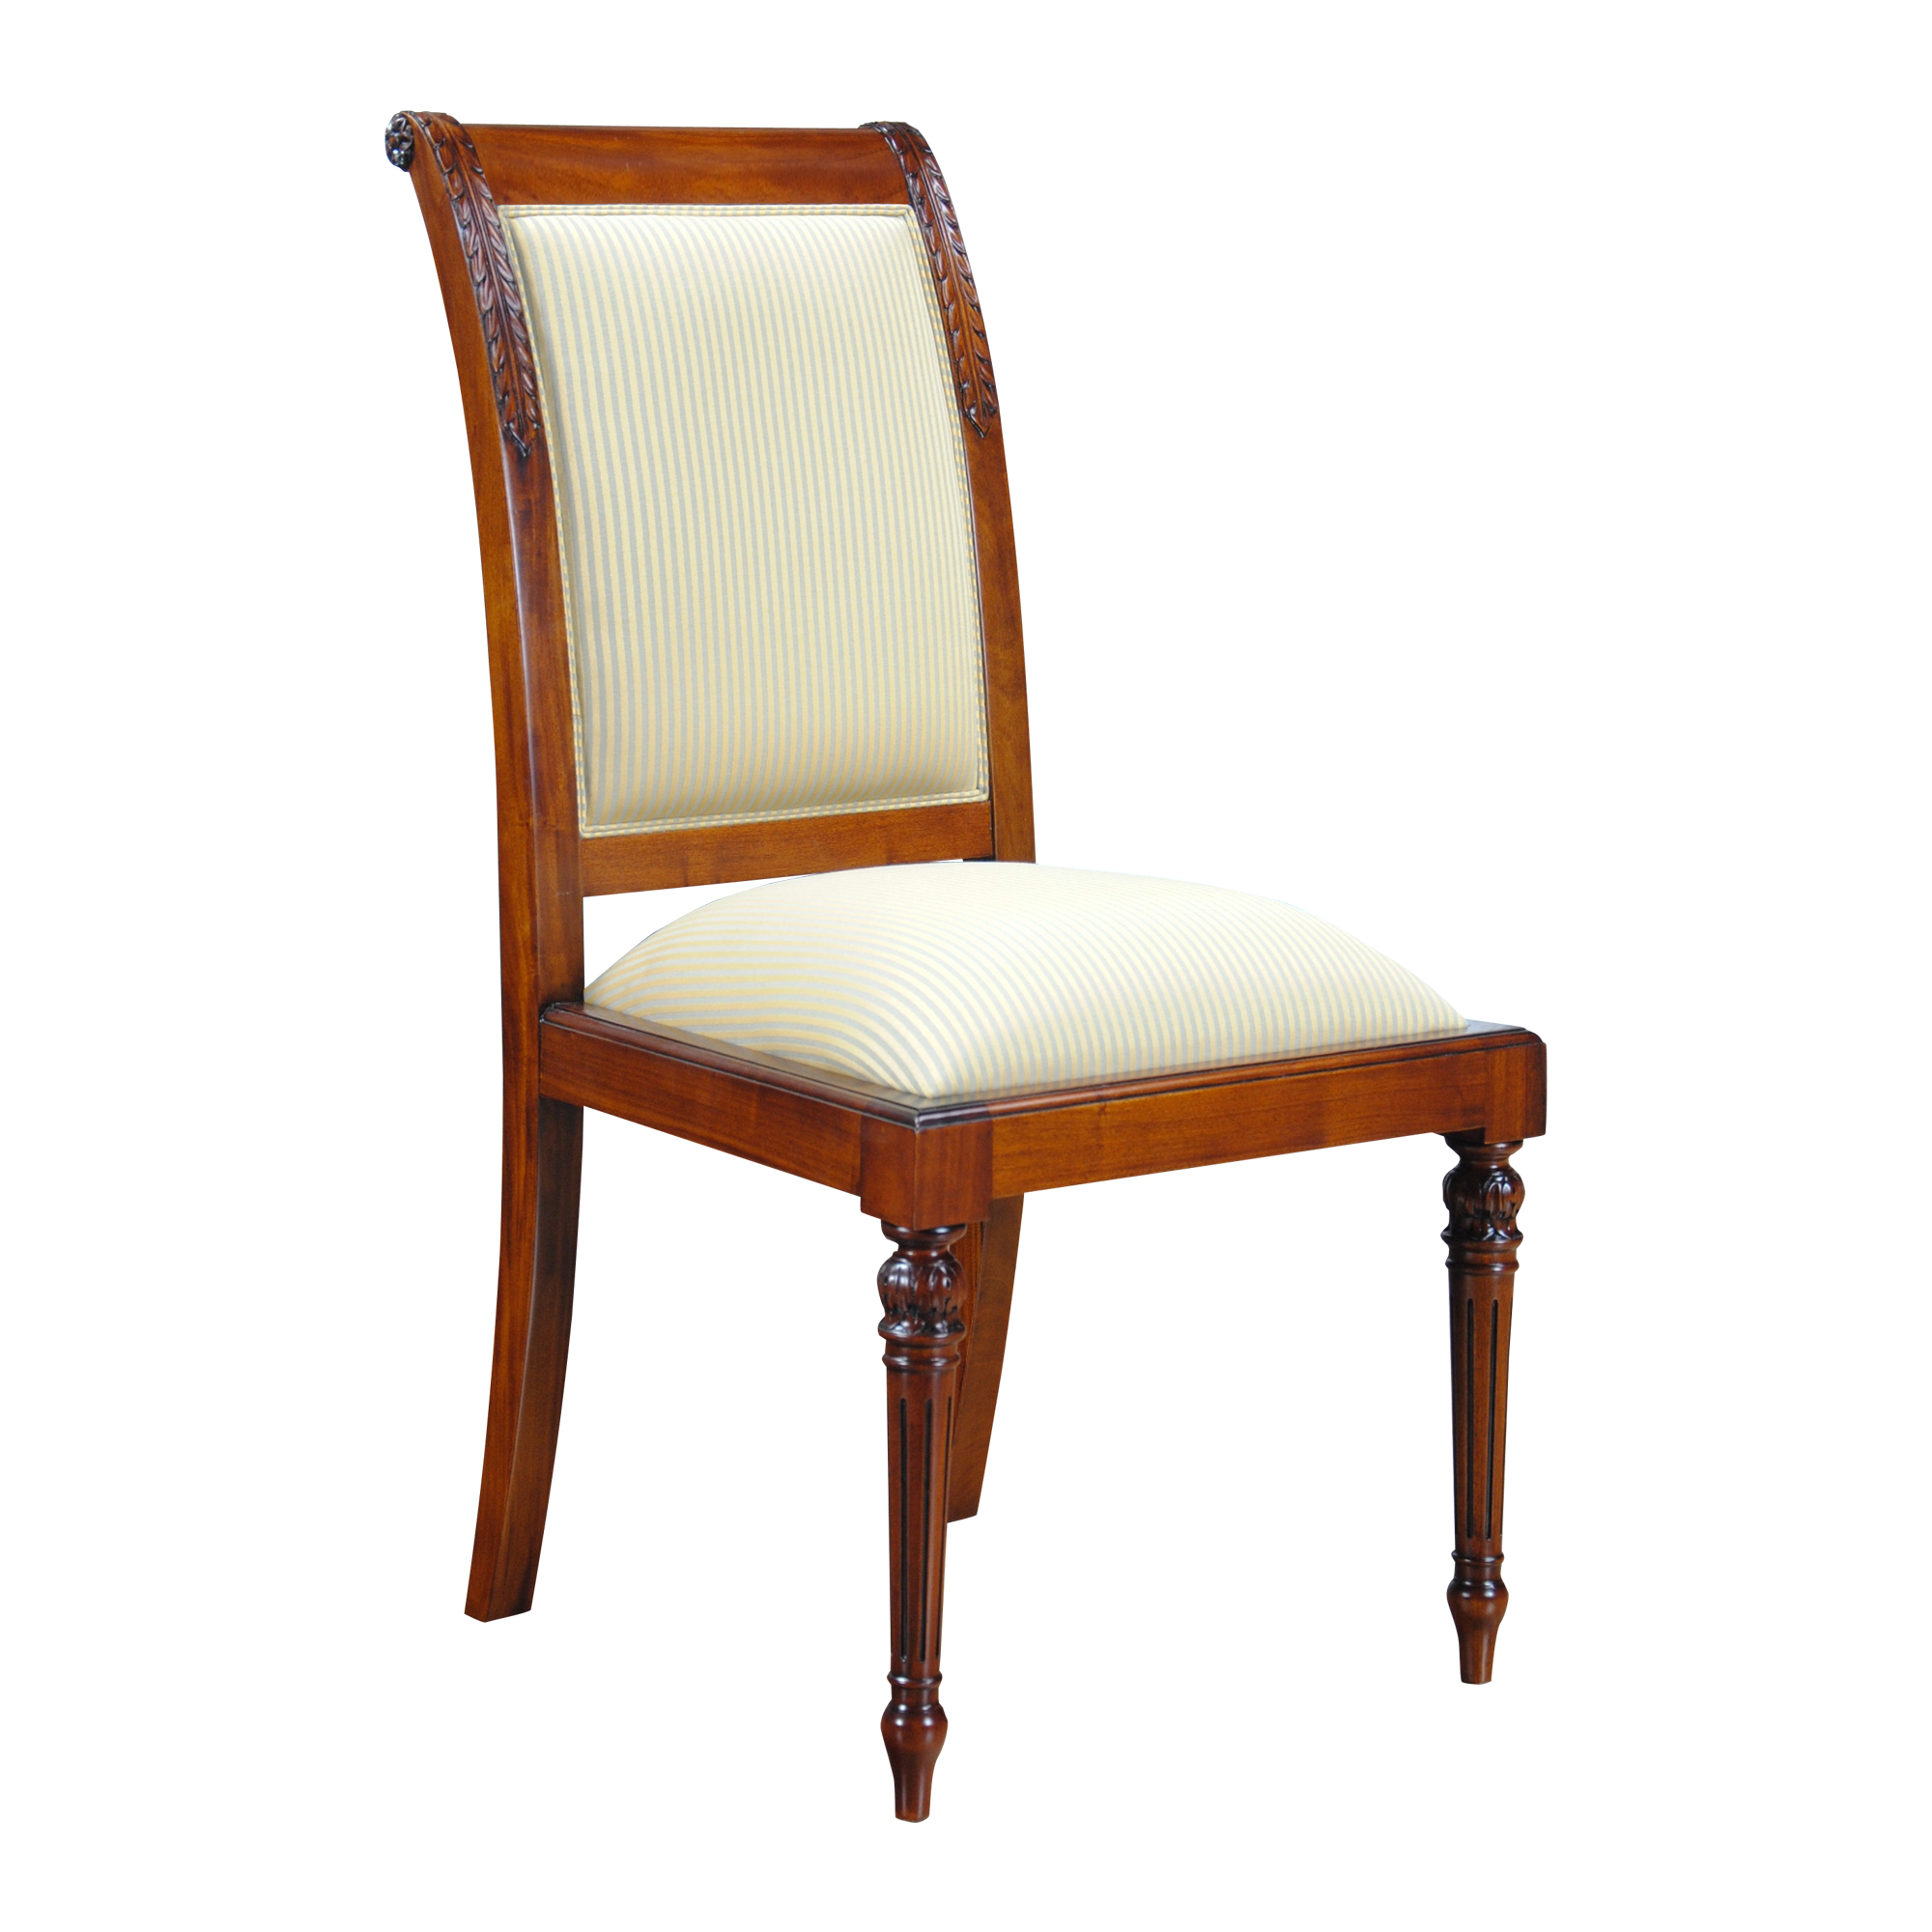 Empire Upholstered Side Chair Niagara Furniture solid